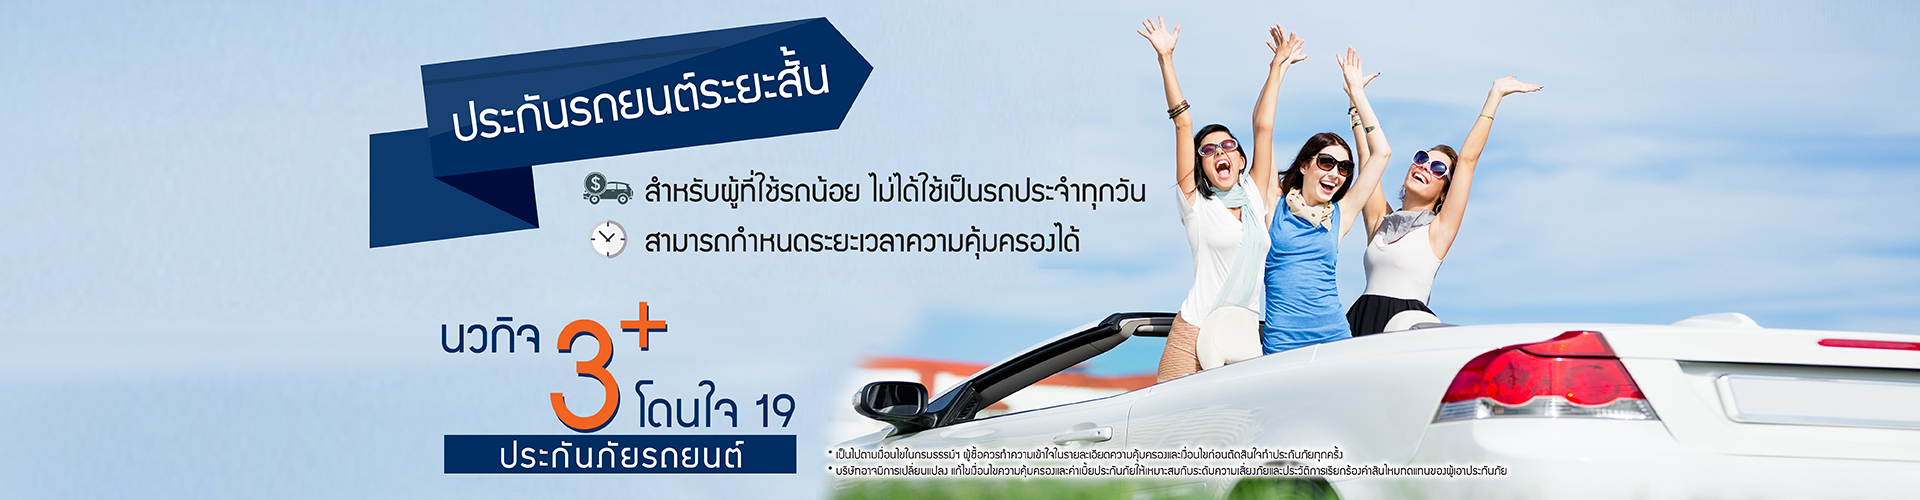 https://www.navakij.co.th/irfile/FilesUpload/jpg/Banner_3+โดนใจ-20200609163332.jpg